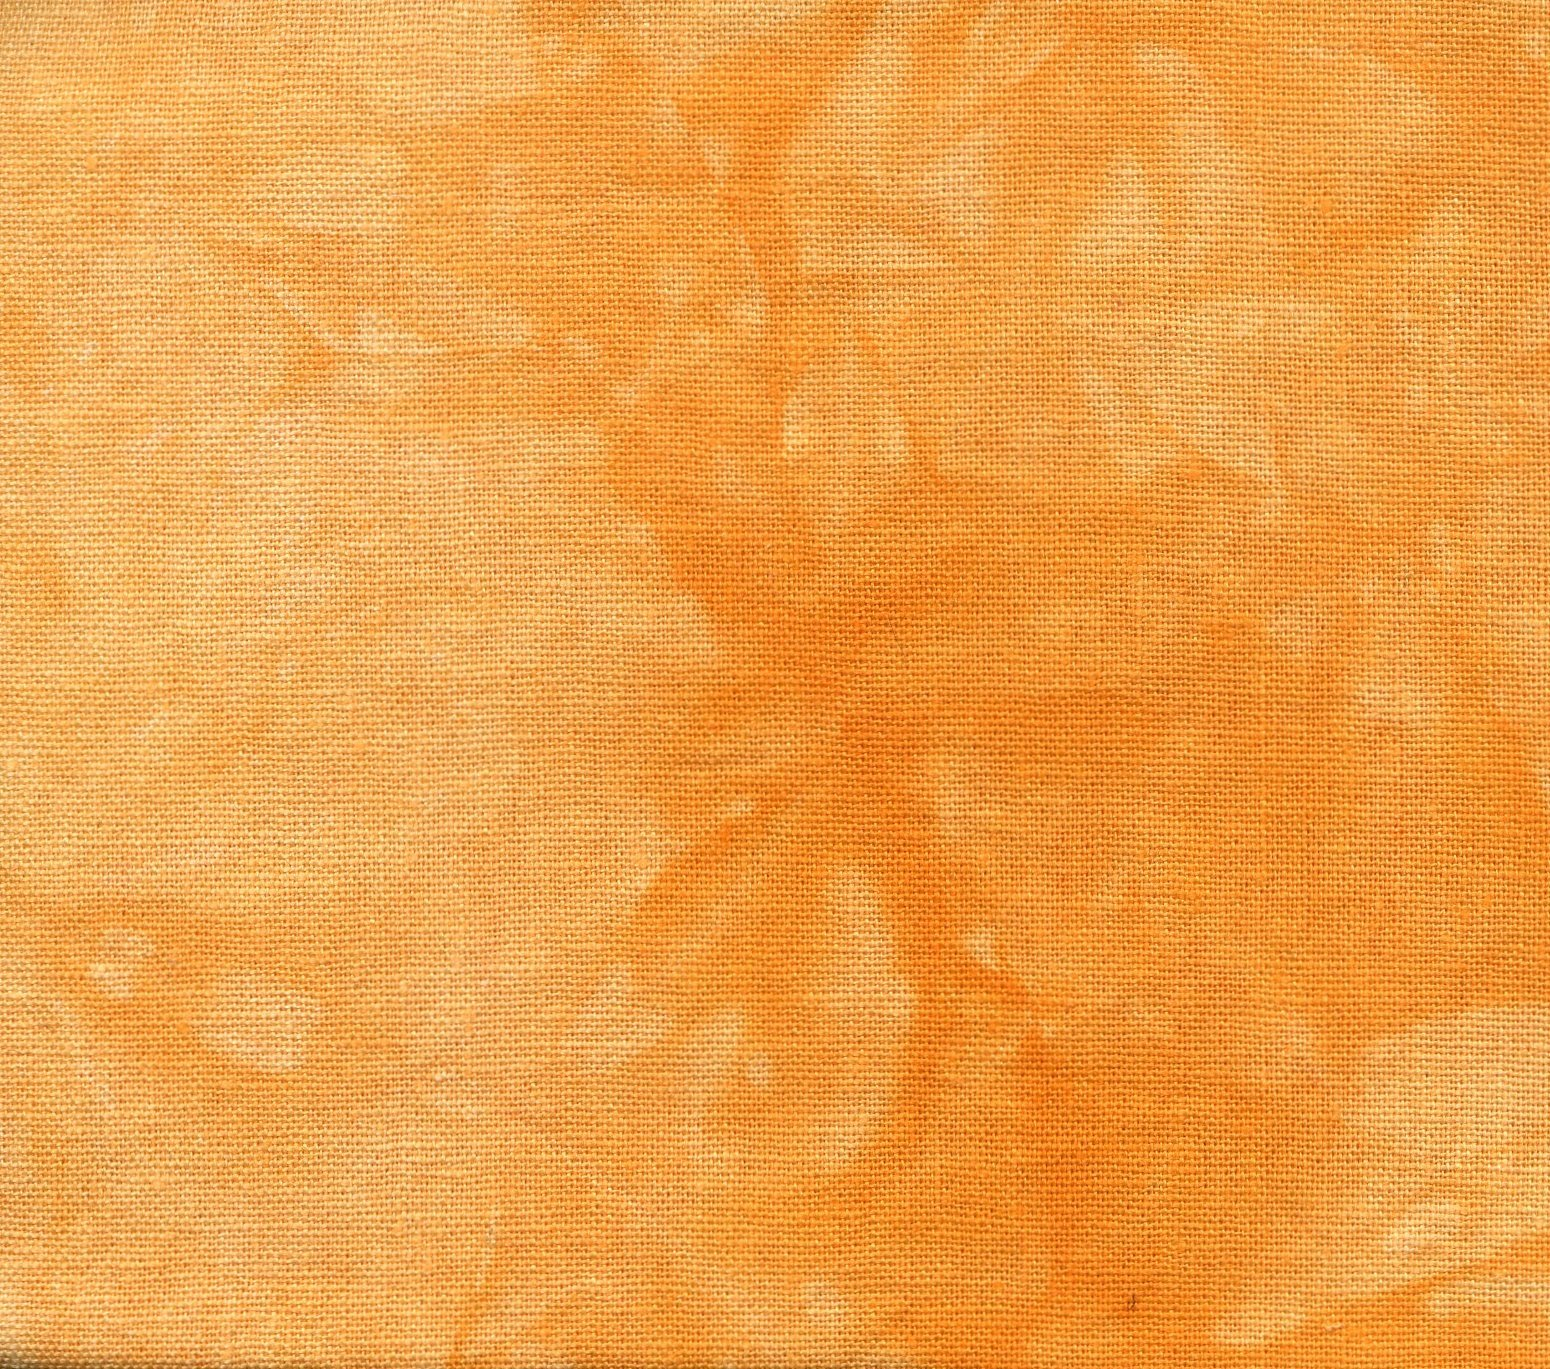 Pumpkin Hand-Dyed Linen Fat Quarter